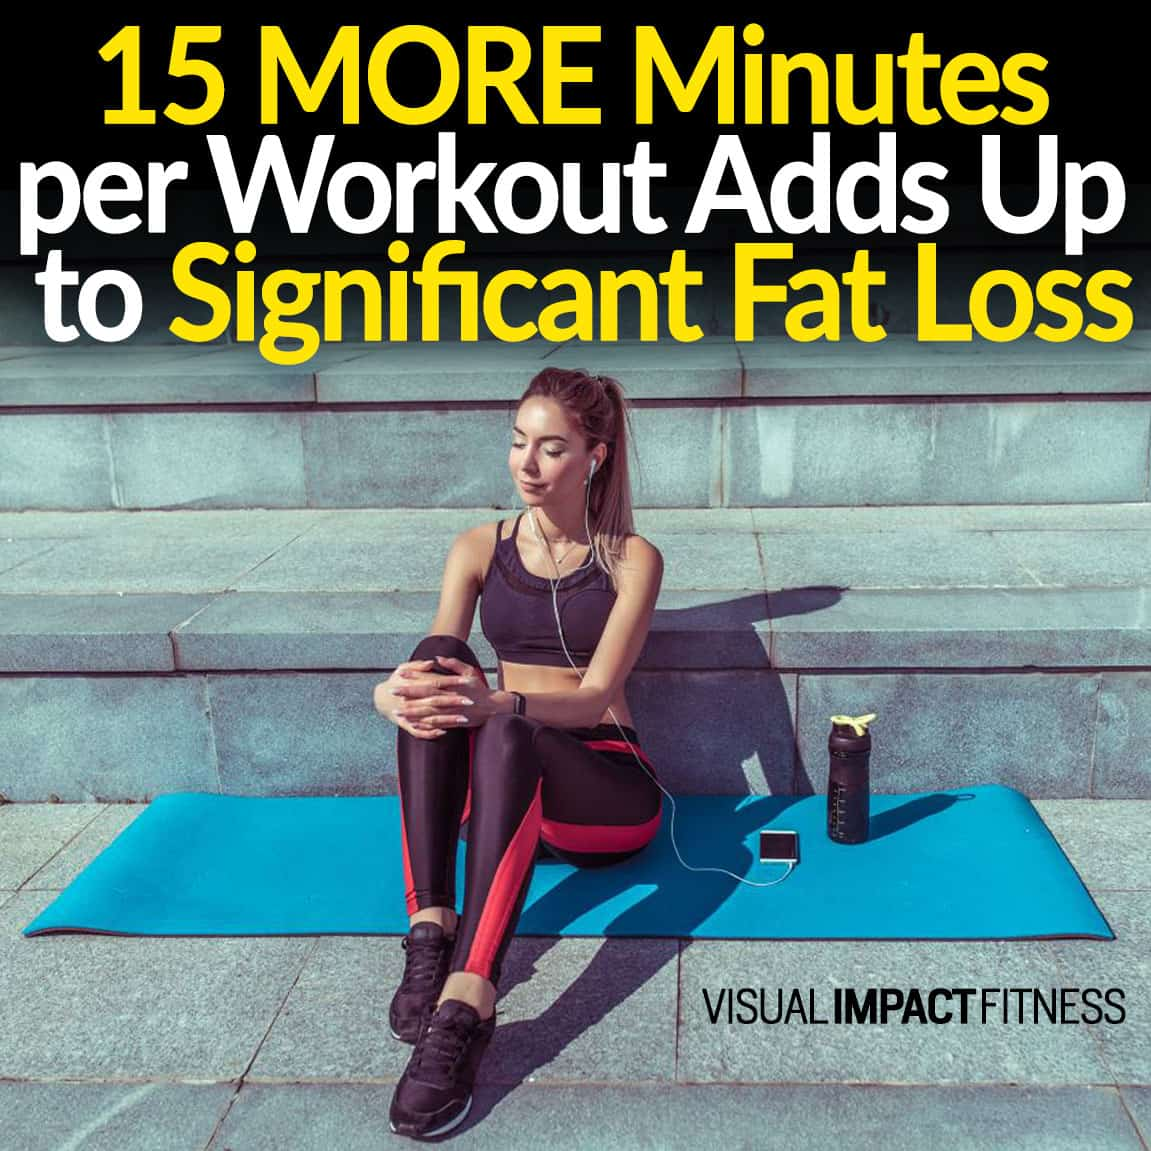 15 MORE Minutes Per Workout… Adds Up to Significant Fat Loss